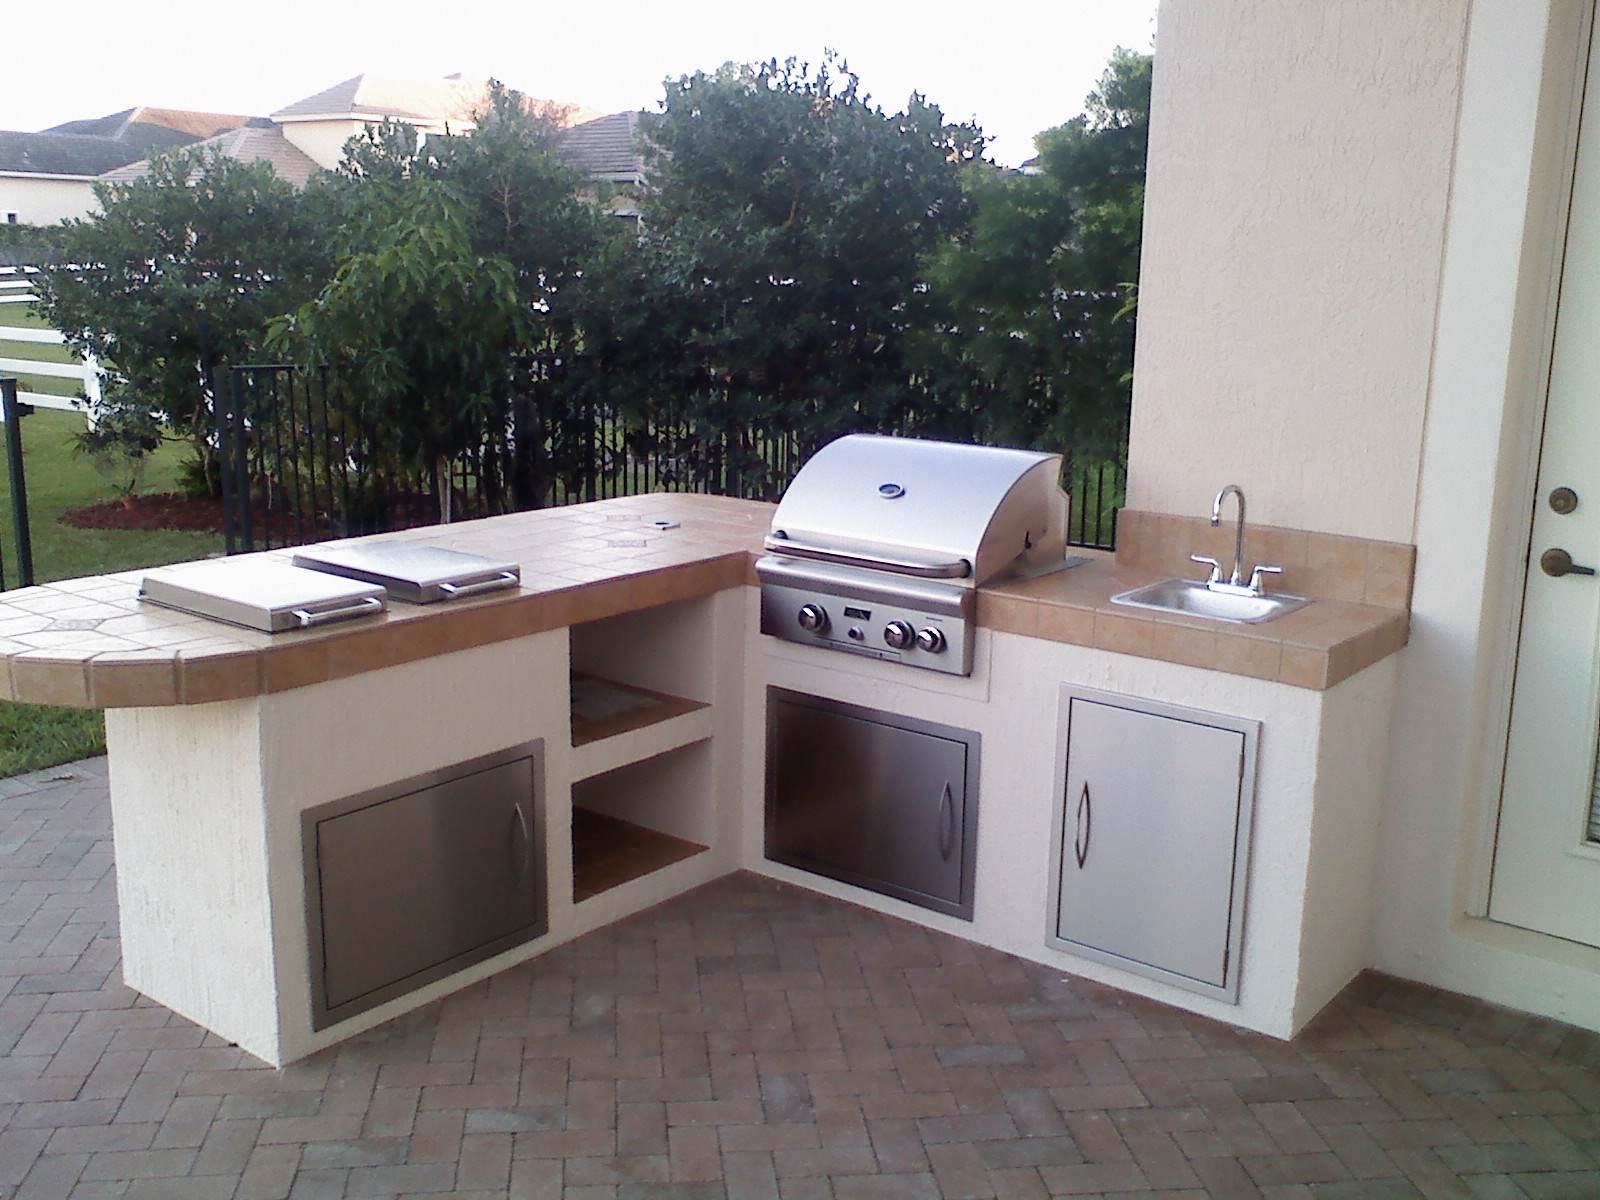 Very Best Built in Outdoor Grill Designs 1600 x 1200 · 339 kB · jpeg